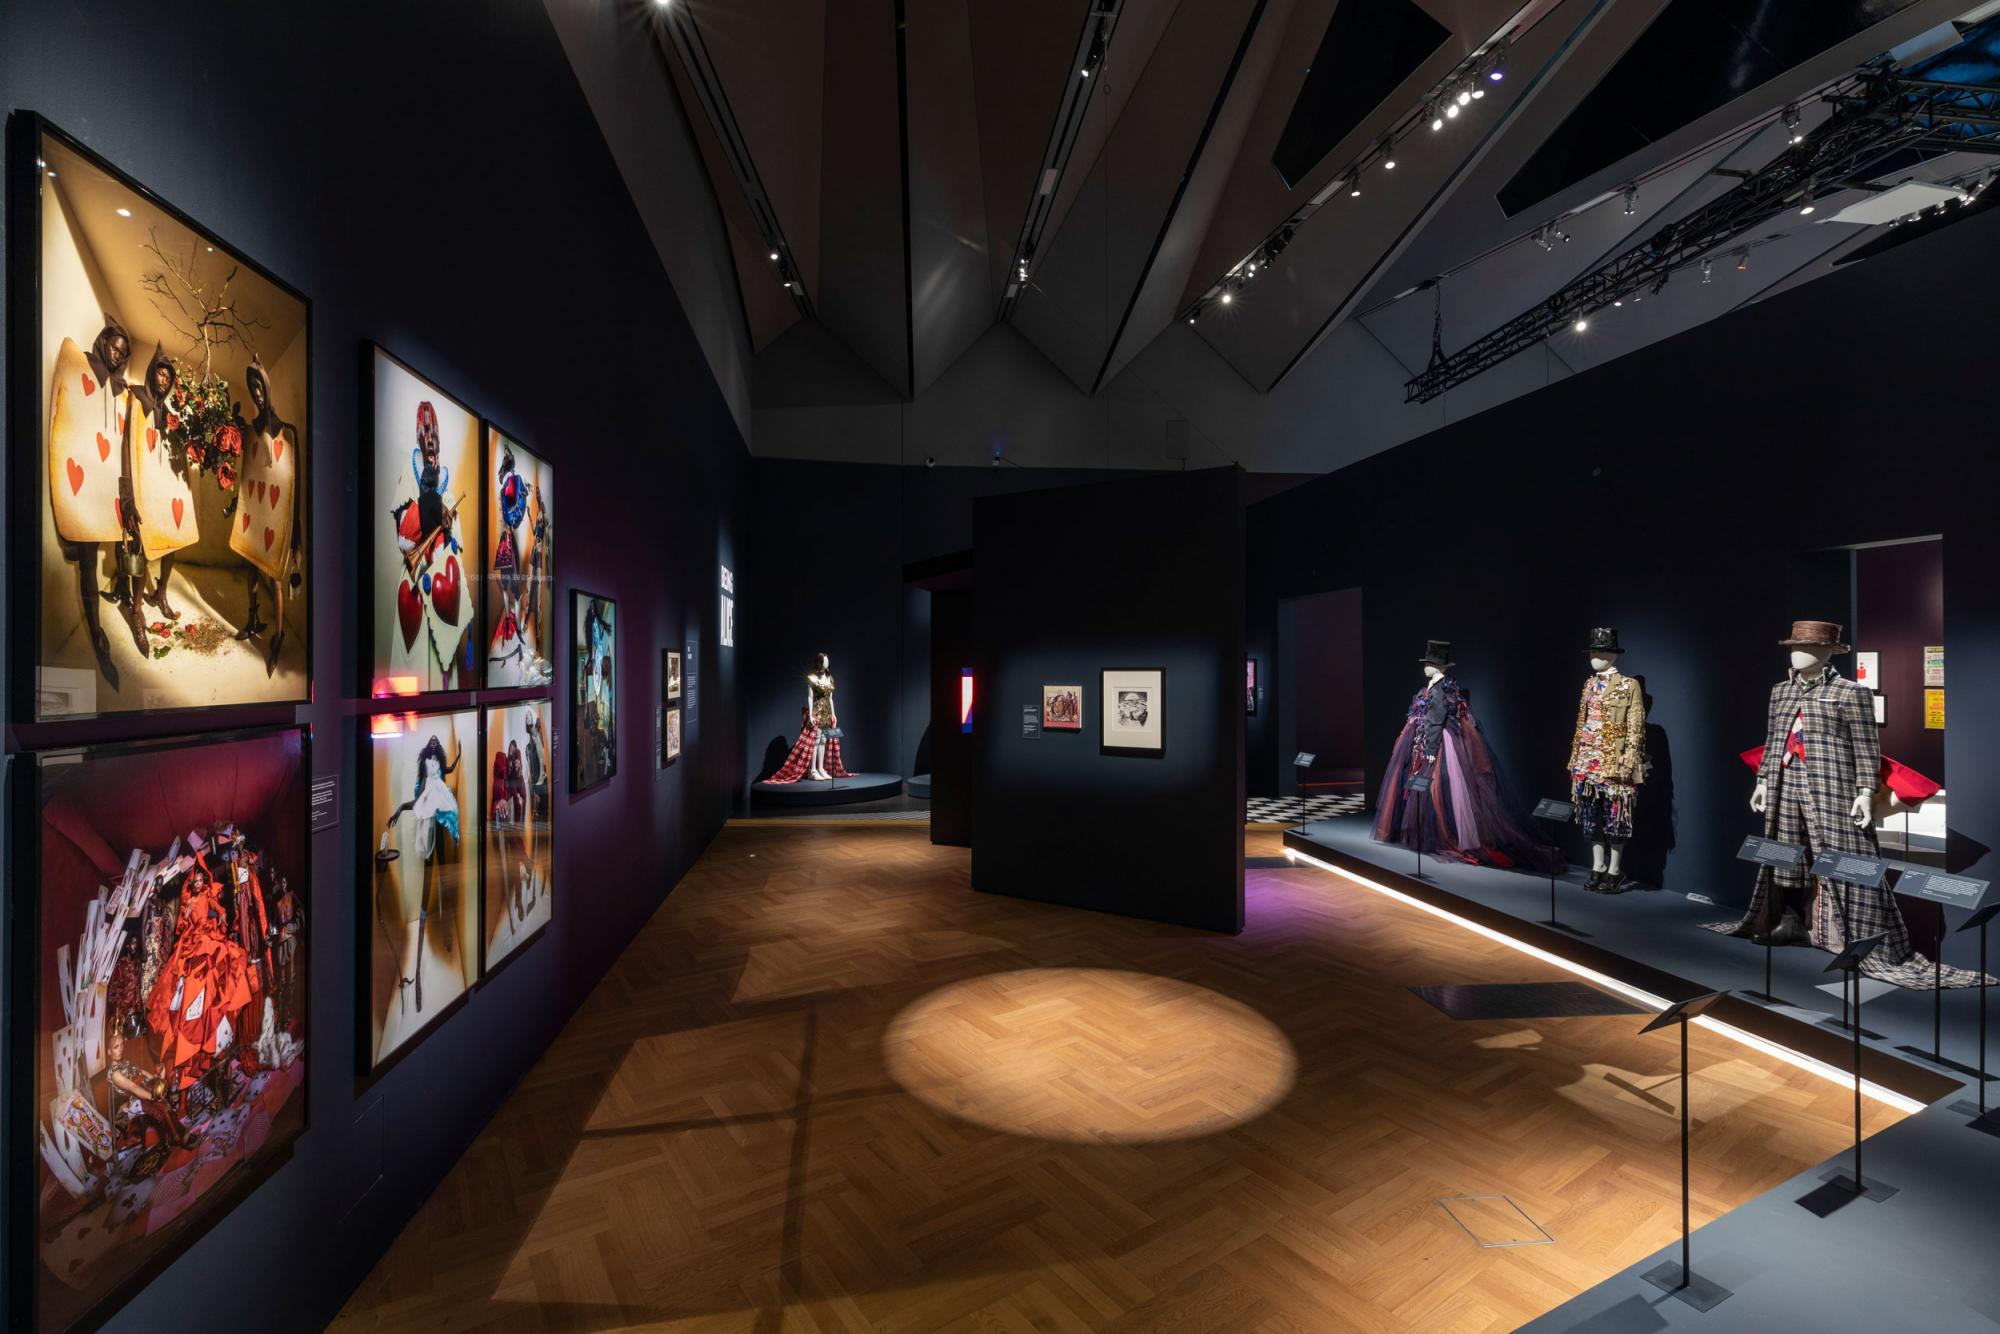 Alice-Curiouser-and-Curiouser,-May-2021,-Installation-Image-(c)-Victoria-and-Albert-Museum,-London-(19).jpg